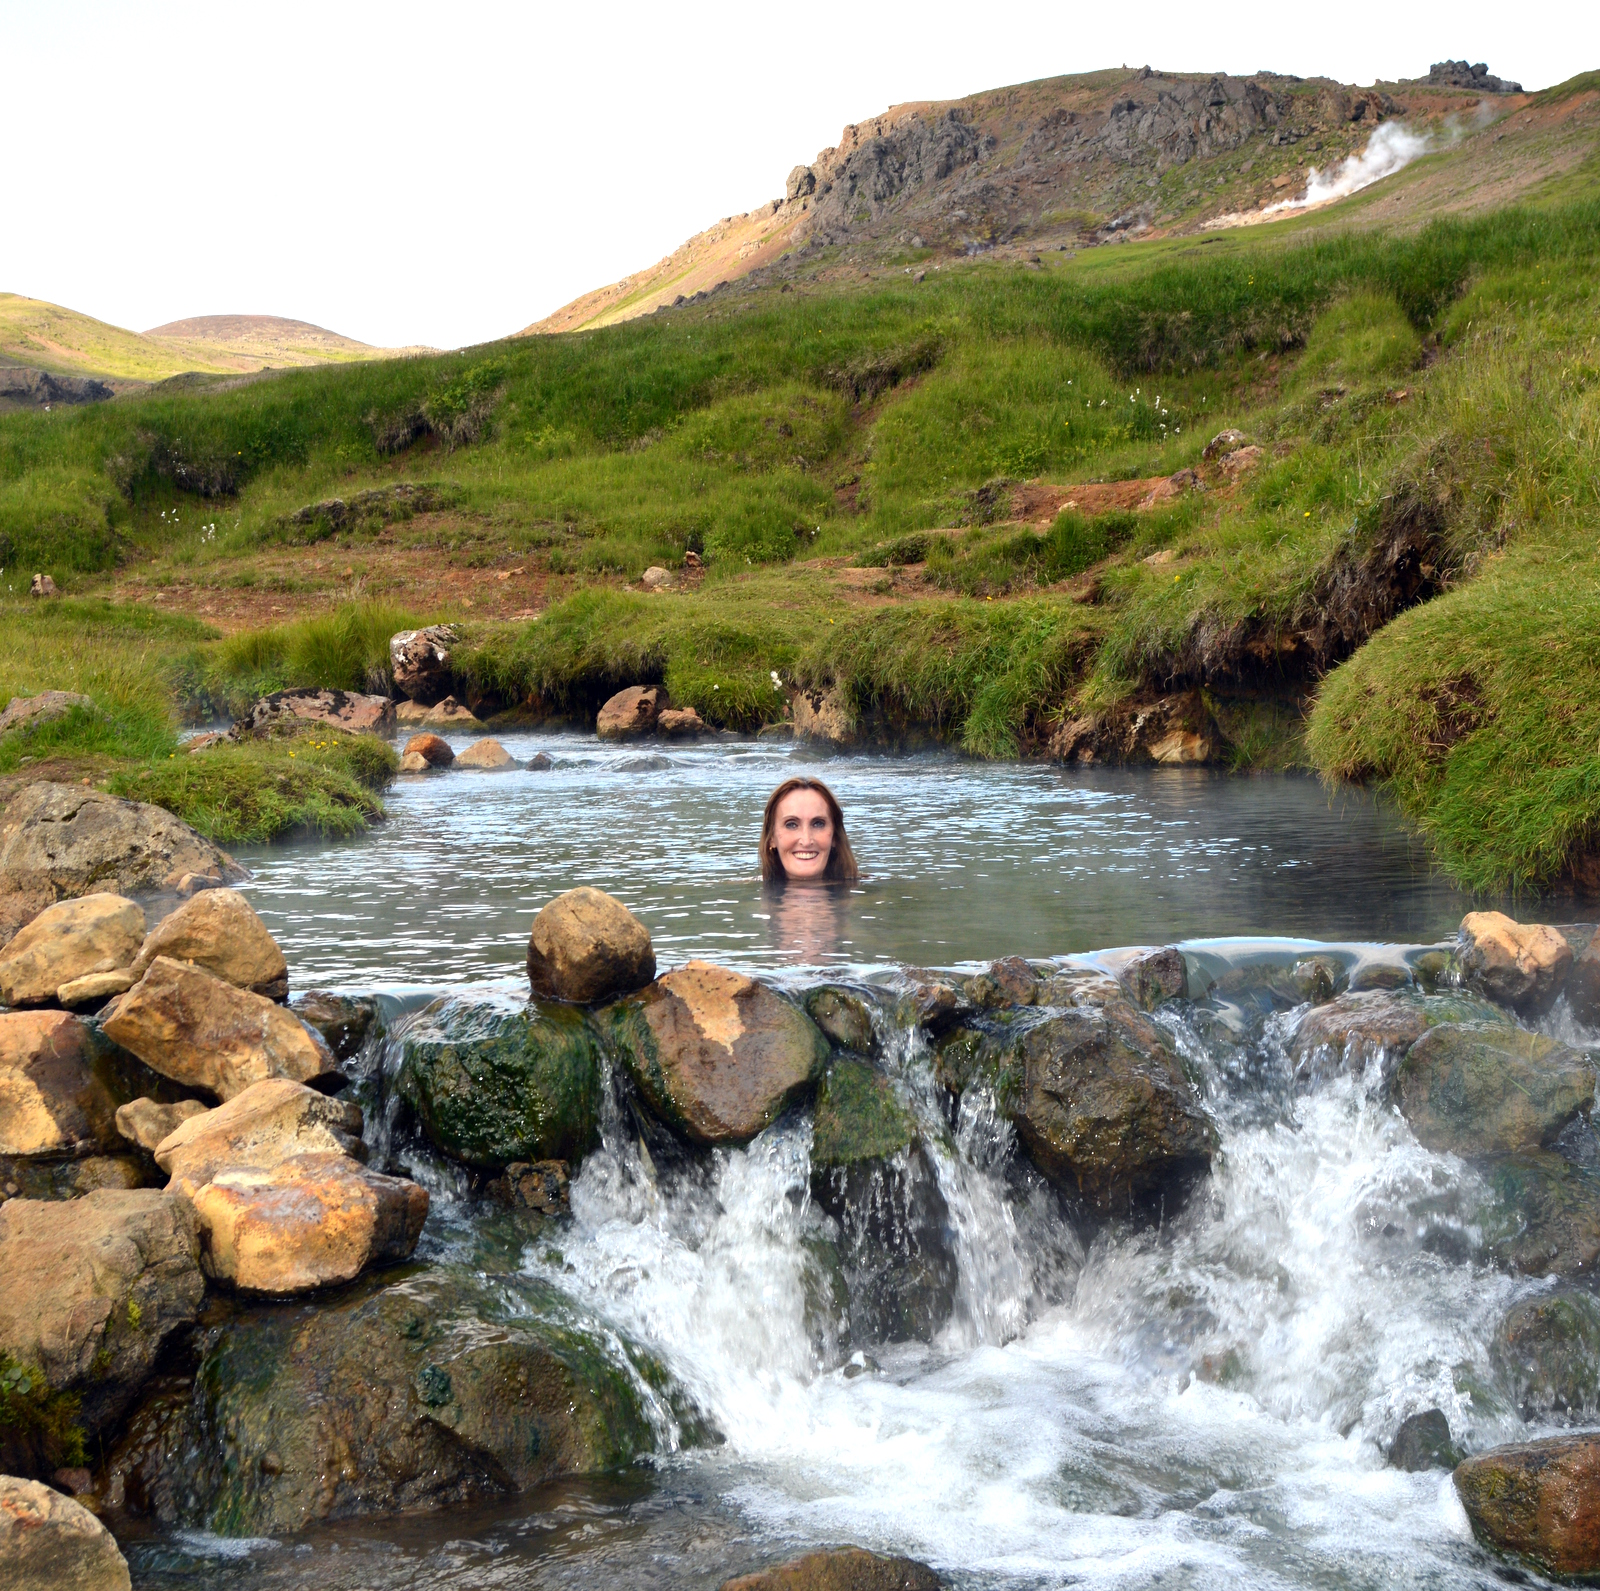 Bathe In A Hot River In The Beautiful Reykjadalur Valley